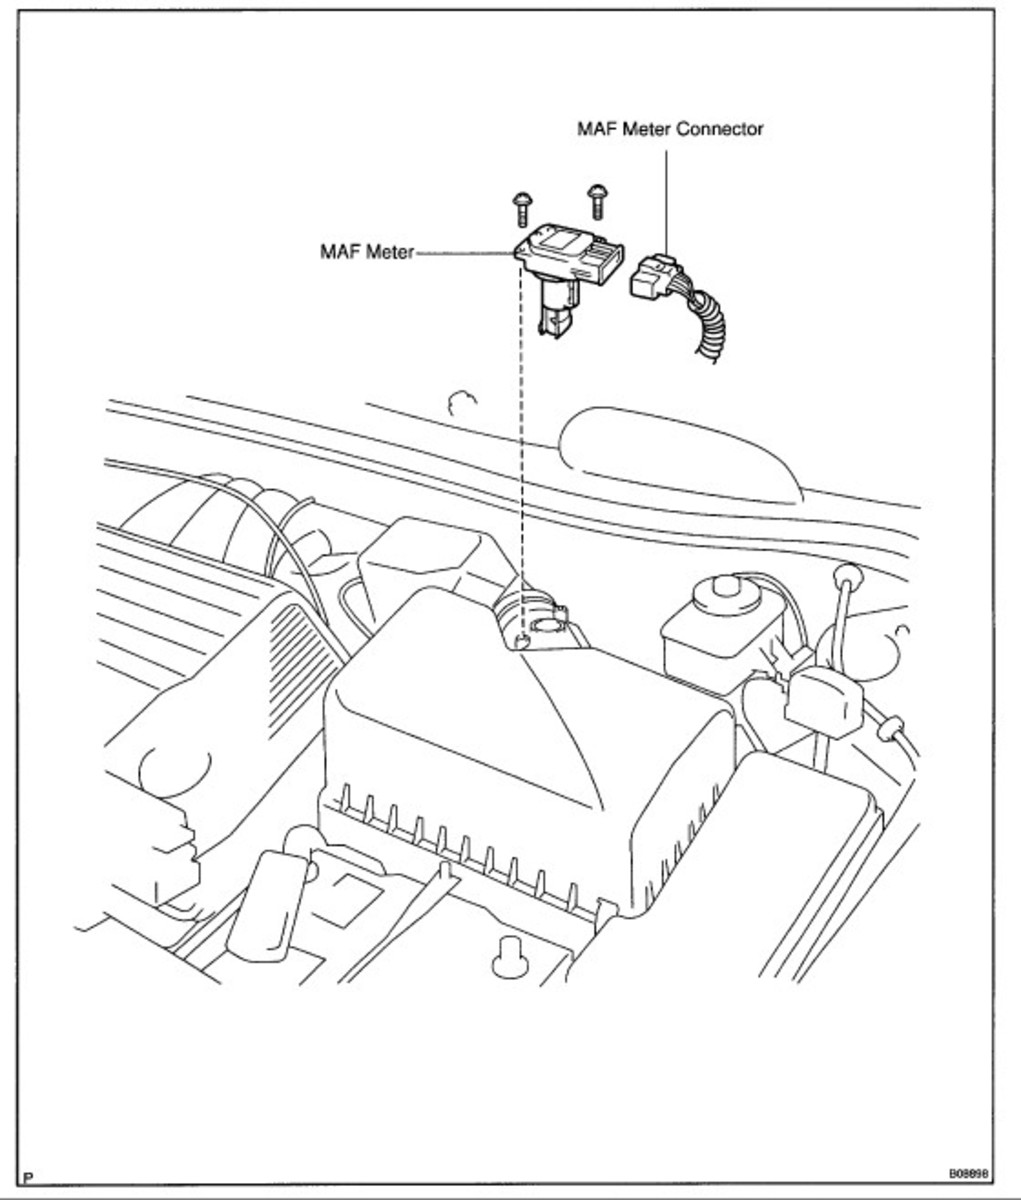 6248443_f520 engine control module and sensor locations axleaddict,Mercedes Maf Sensor Wiring Diagram